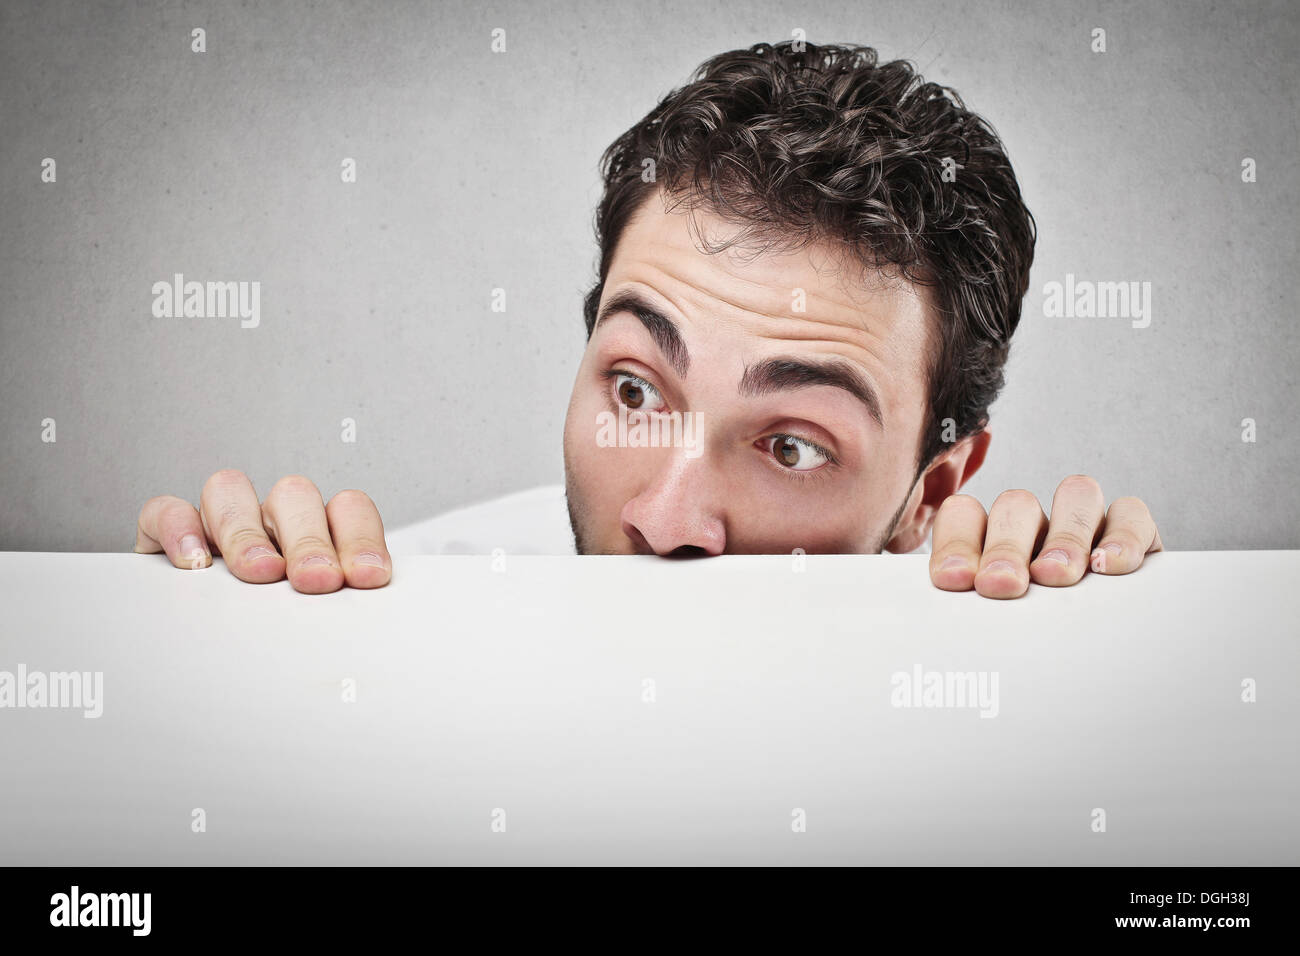 Amazed man watching something on a white desk - Stock Image